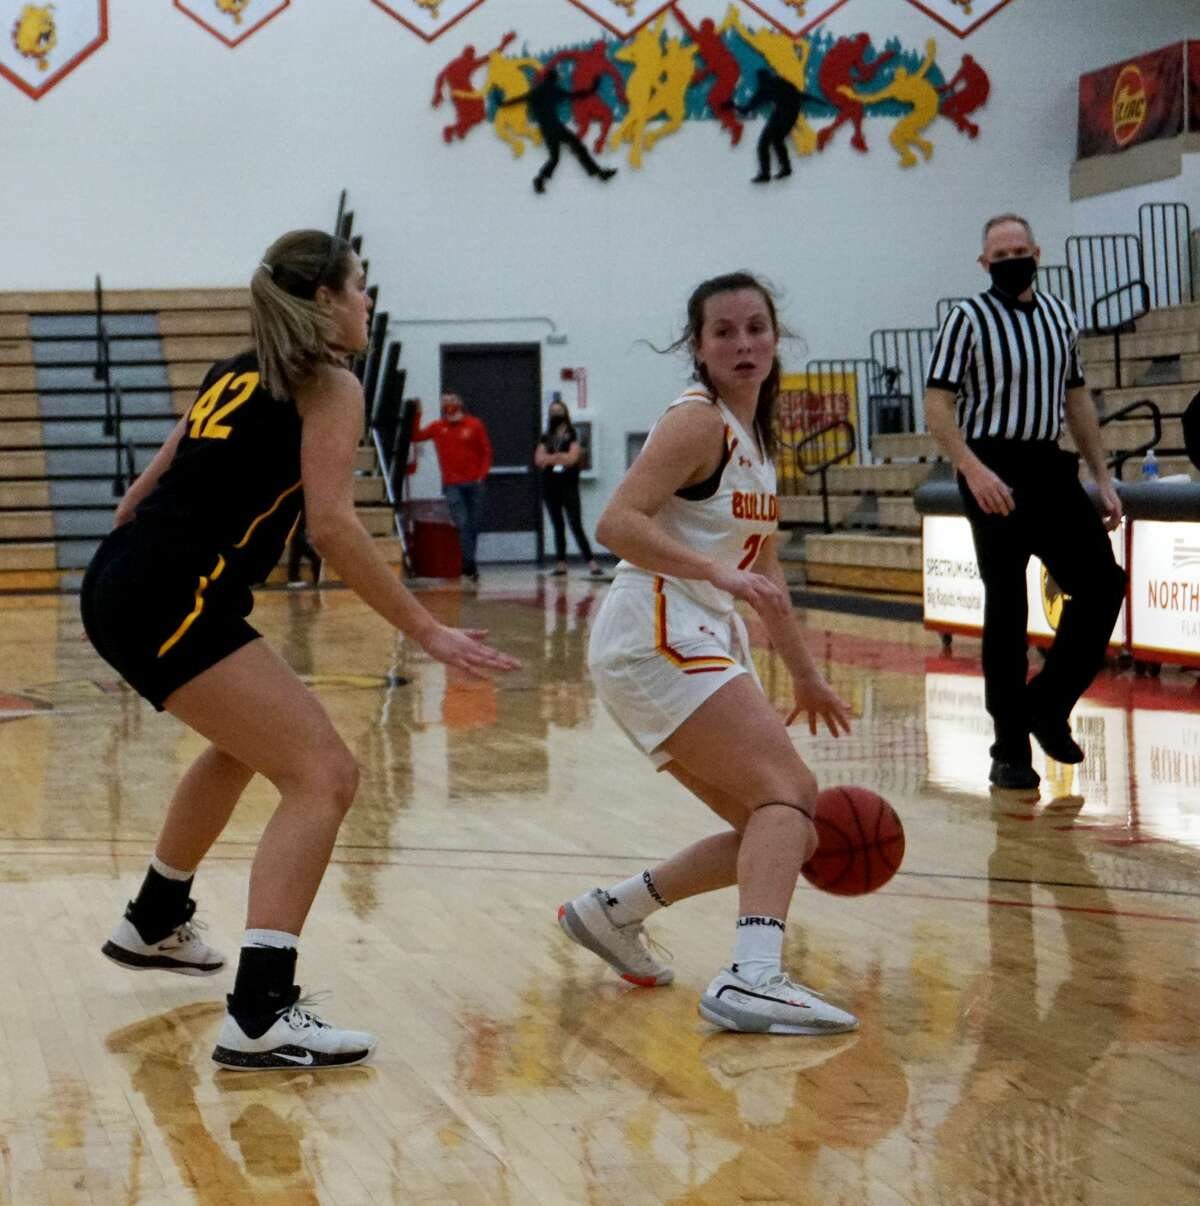 Ferris State's women's basketball team was defeated 66-51 by Michigan Tech on Friday nigt at Wink Arena.